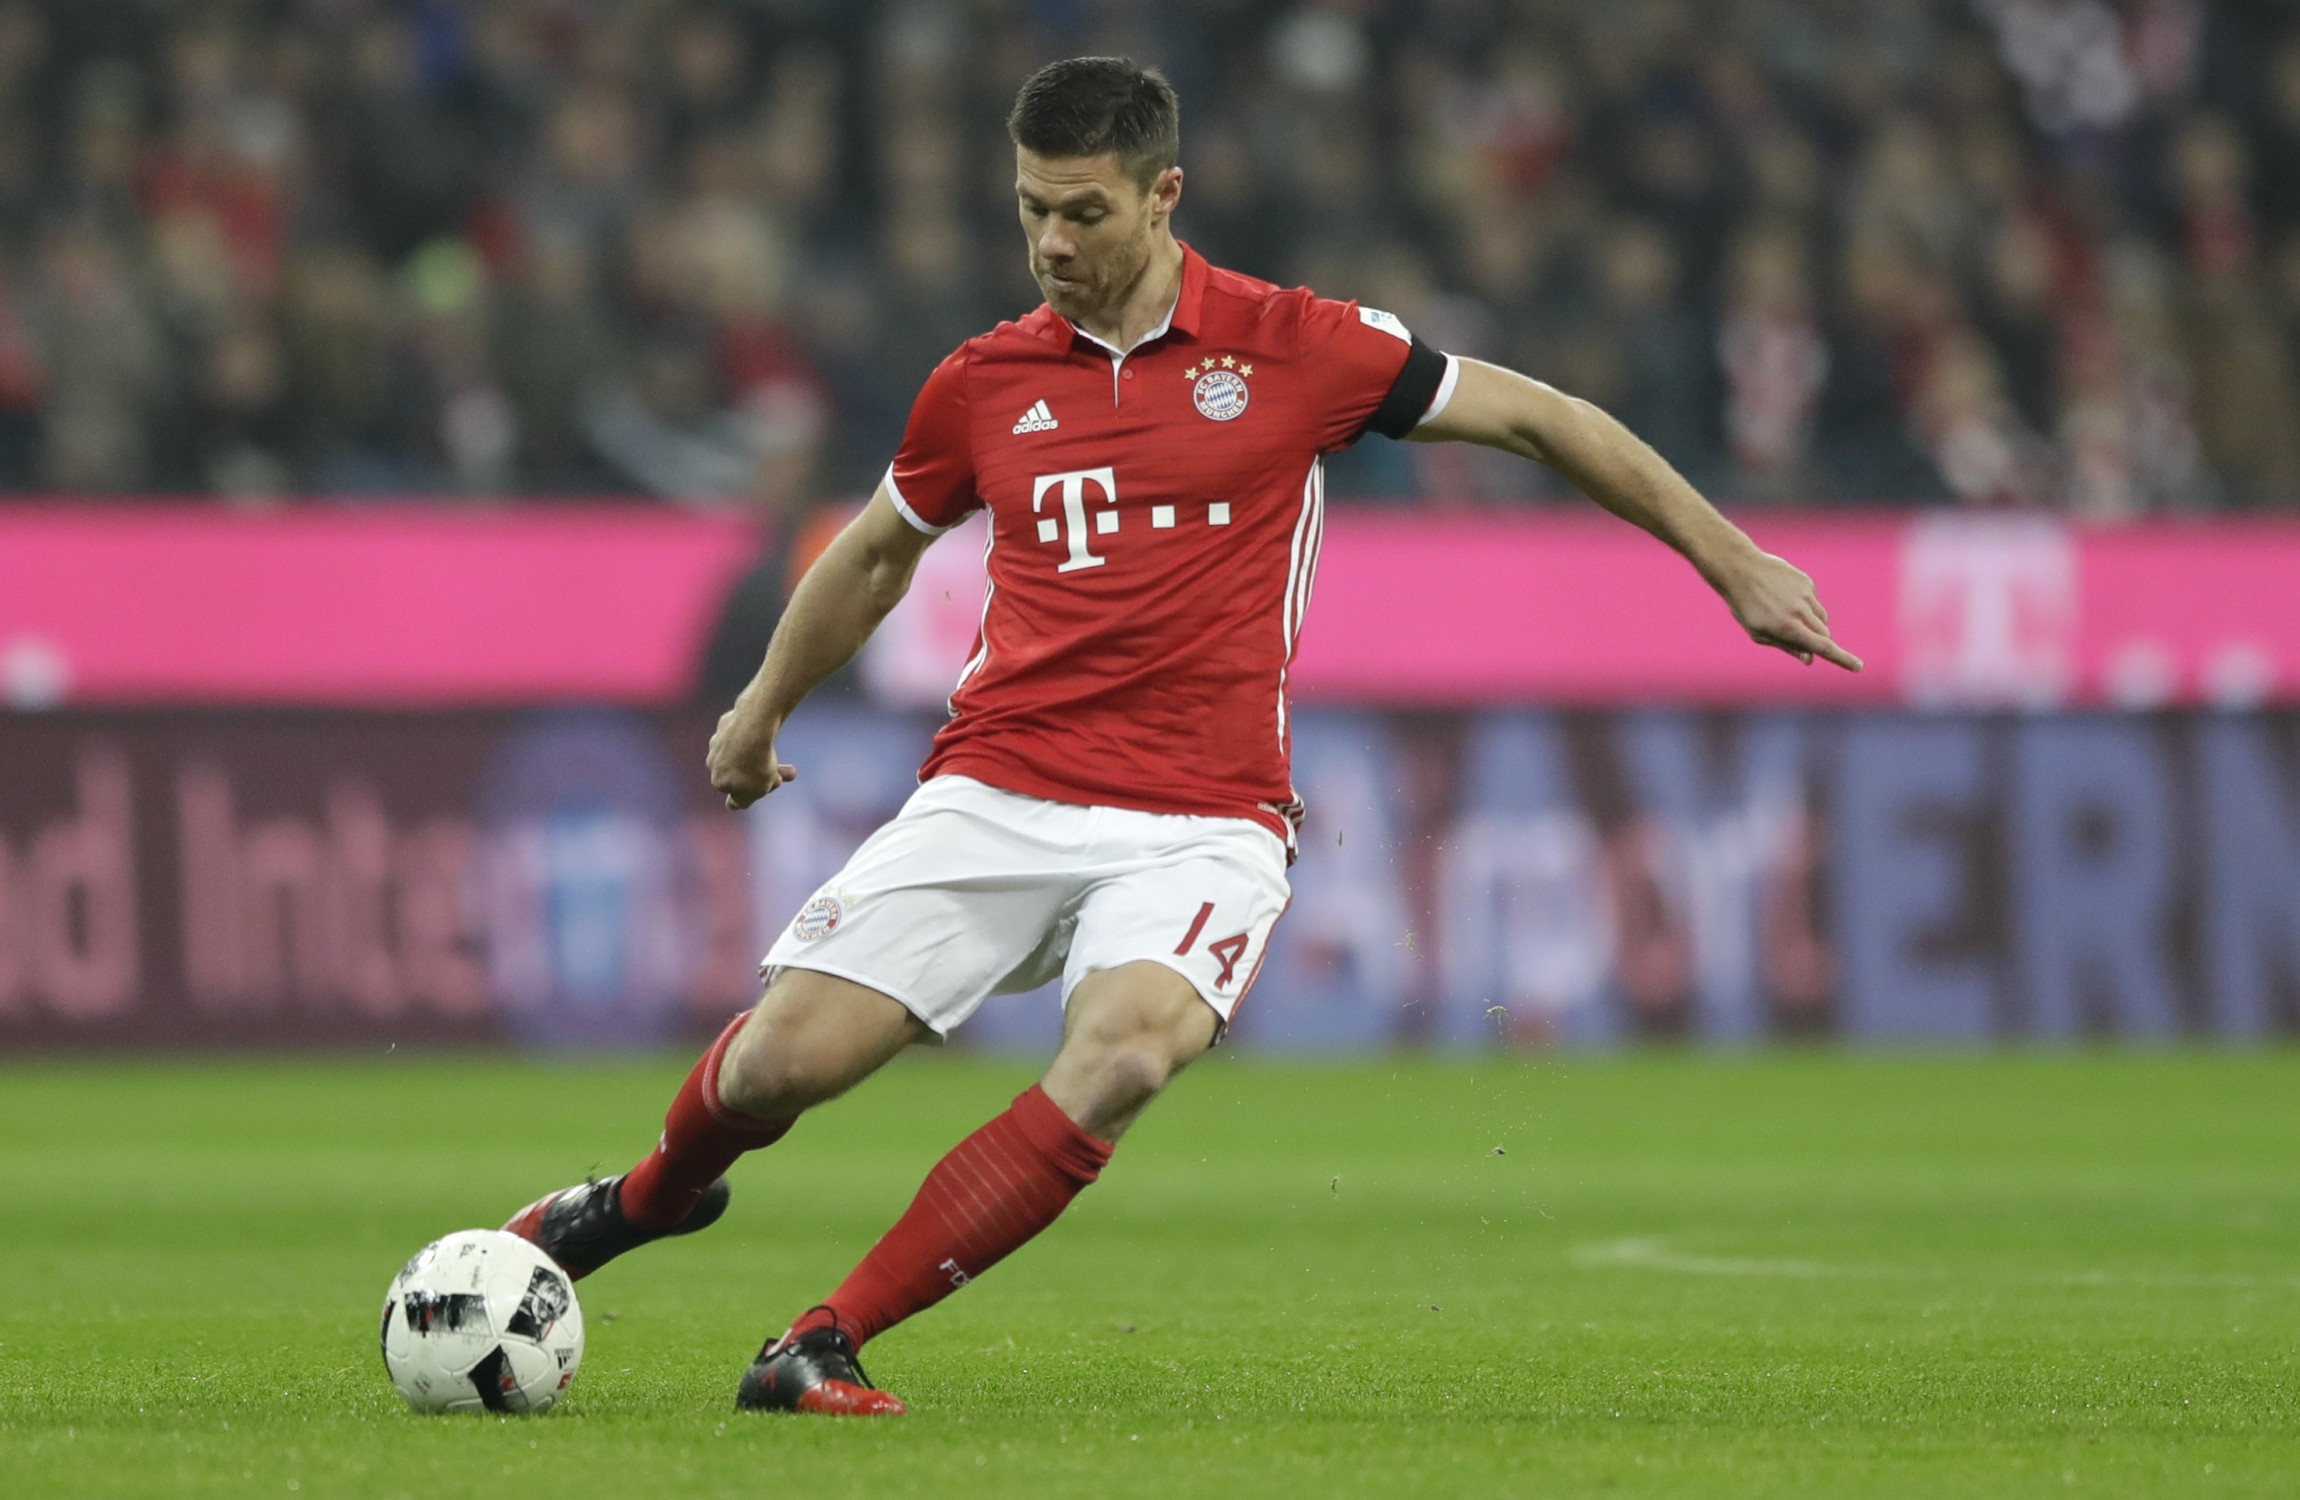 Bayern Munich s Alonso set to retire at end of this season report